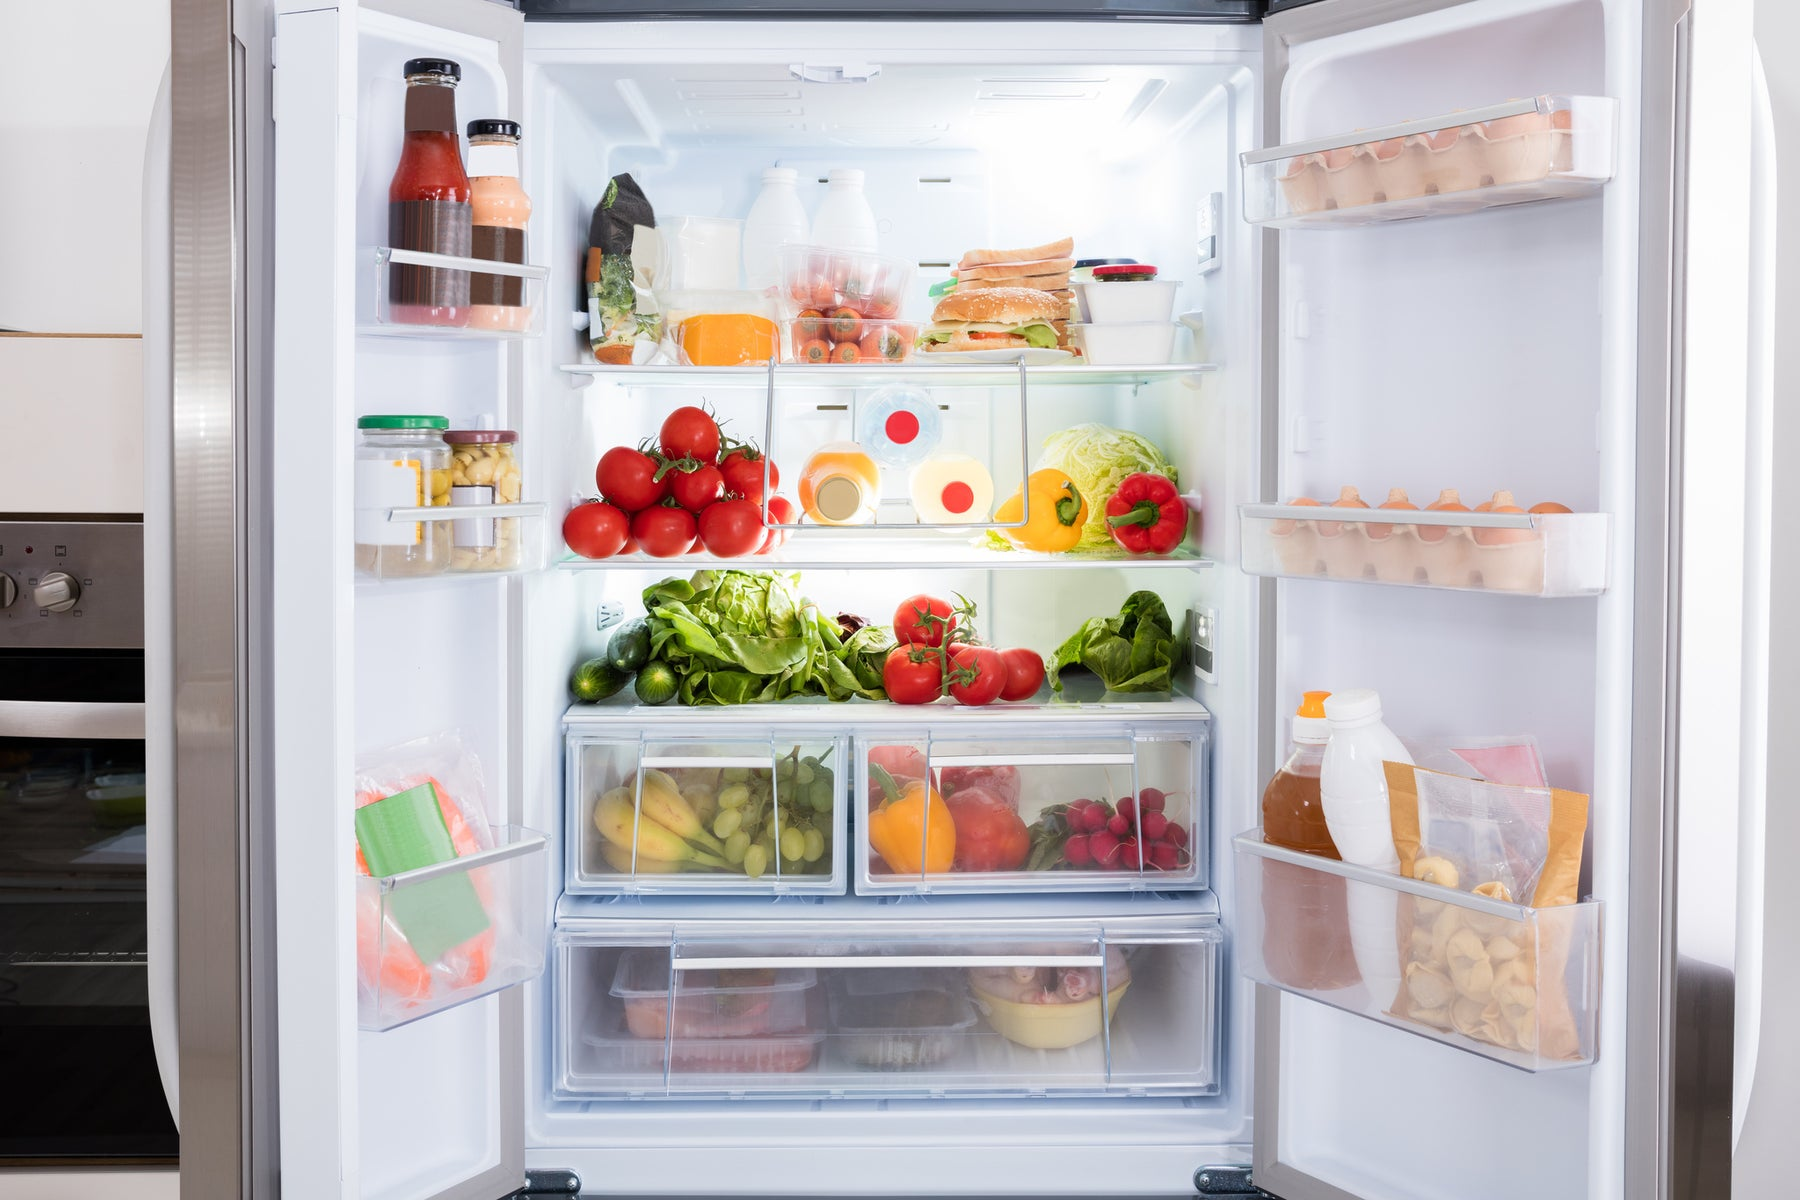 Fall Check In: Refrigerator/Freezer Door Bins